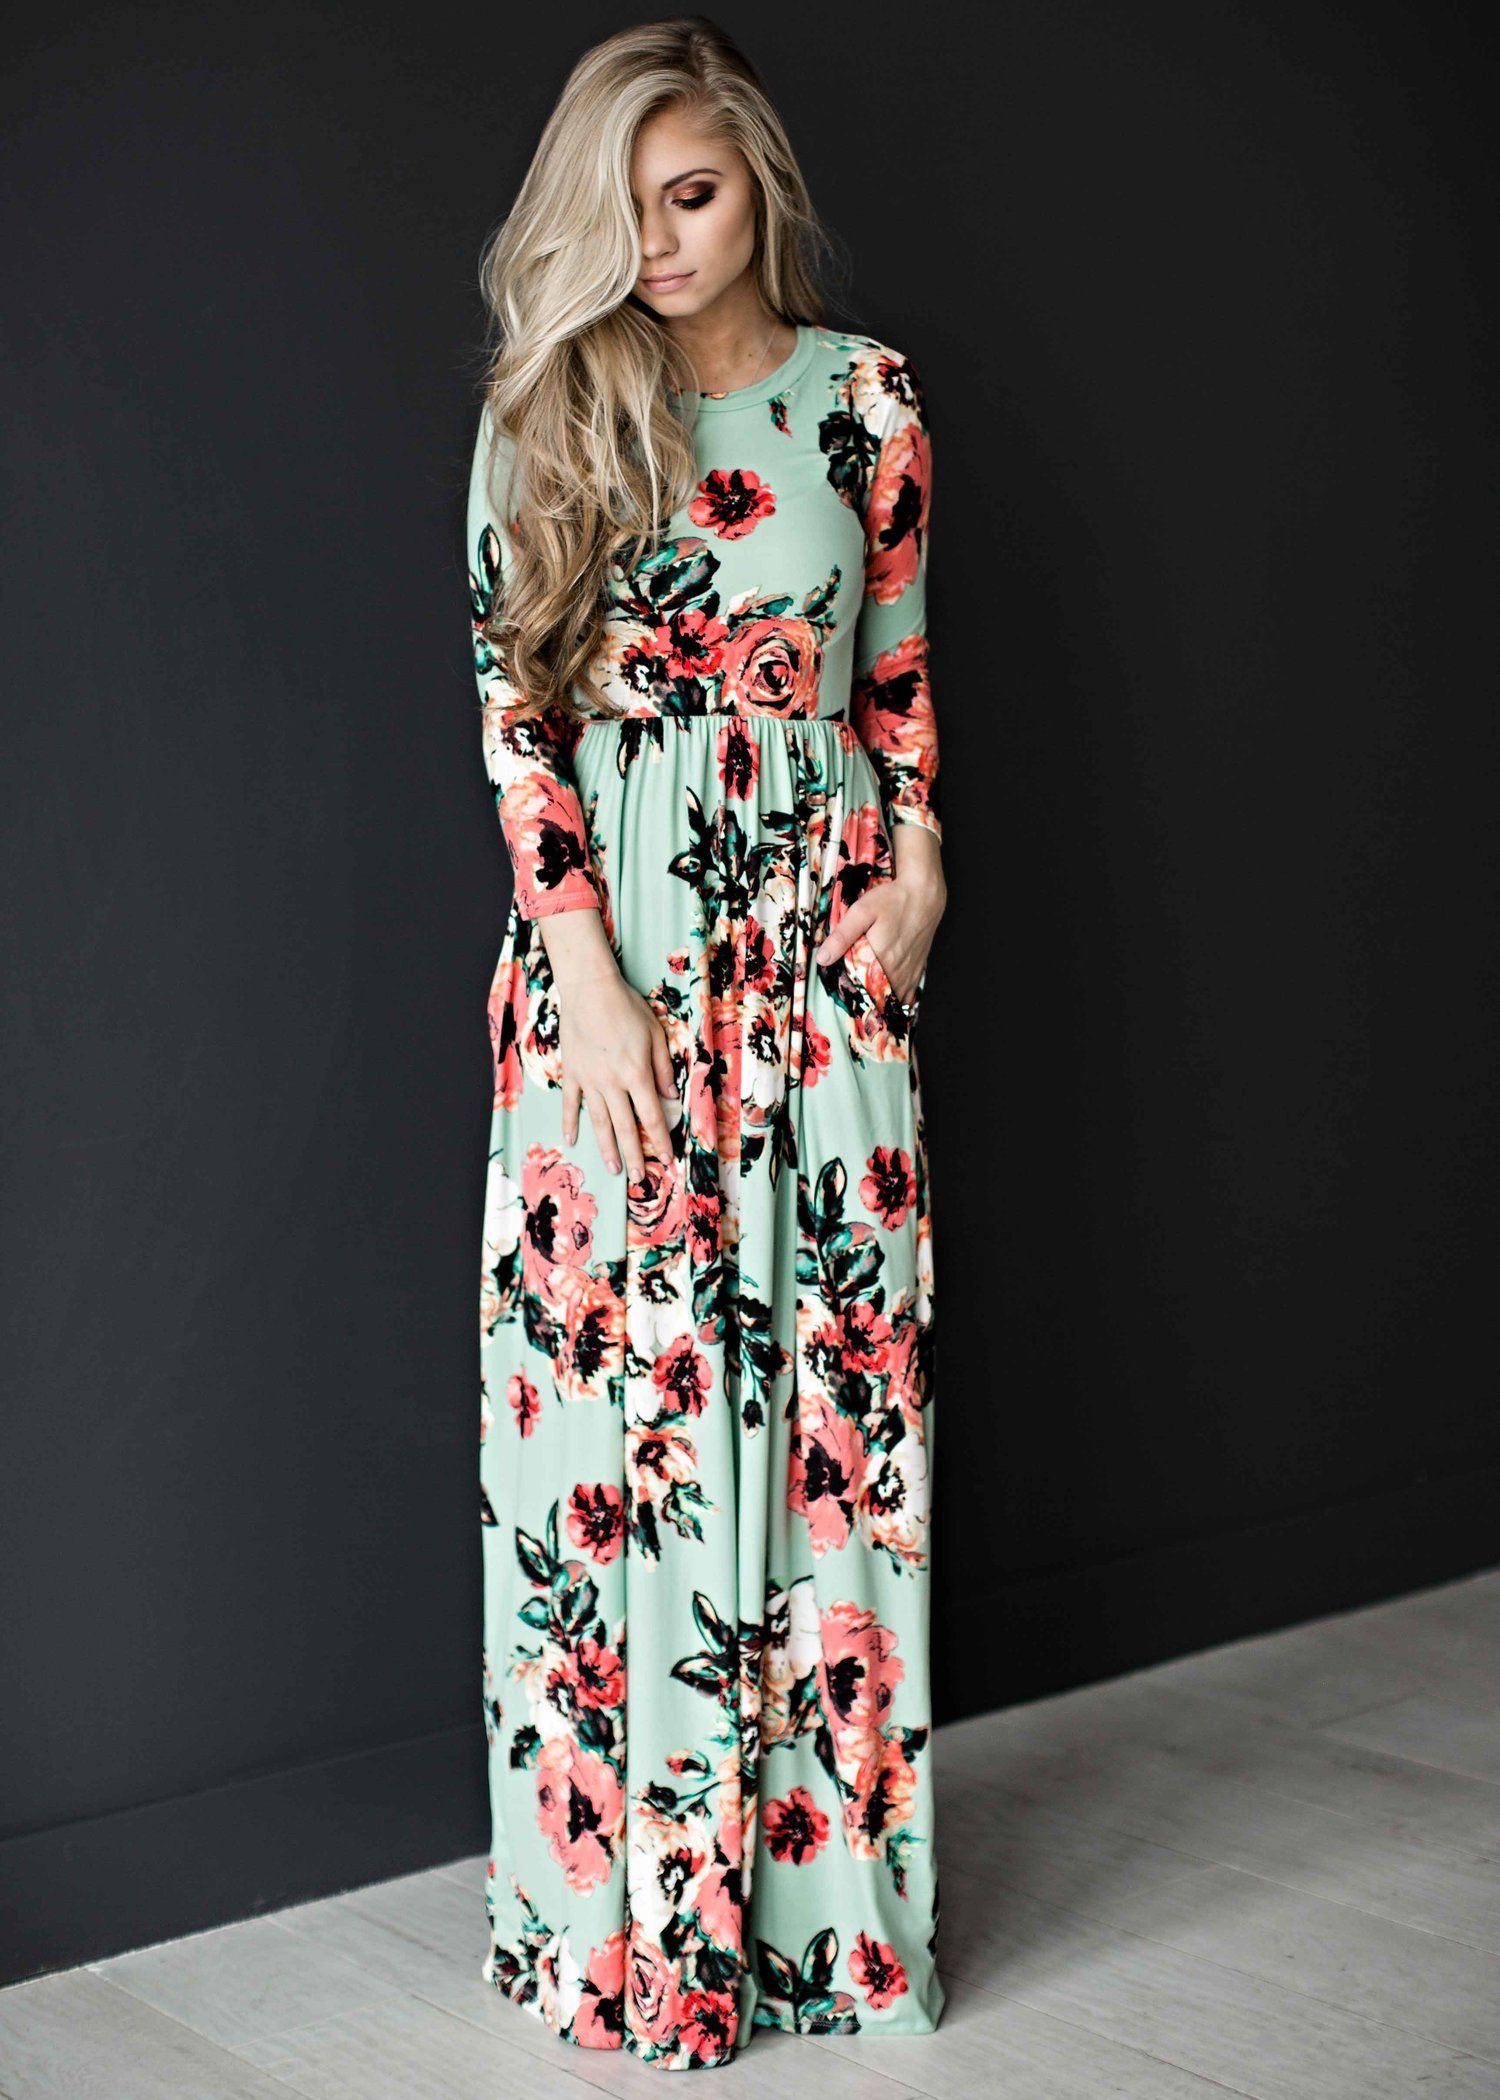 Floral Dress Floral Easter Dress Blonde Hair Fashion Style Makeup Ootd Womens Fashion Jessakae Maxi Dress With Sleeves Floral Dress Casual Maxi Dress